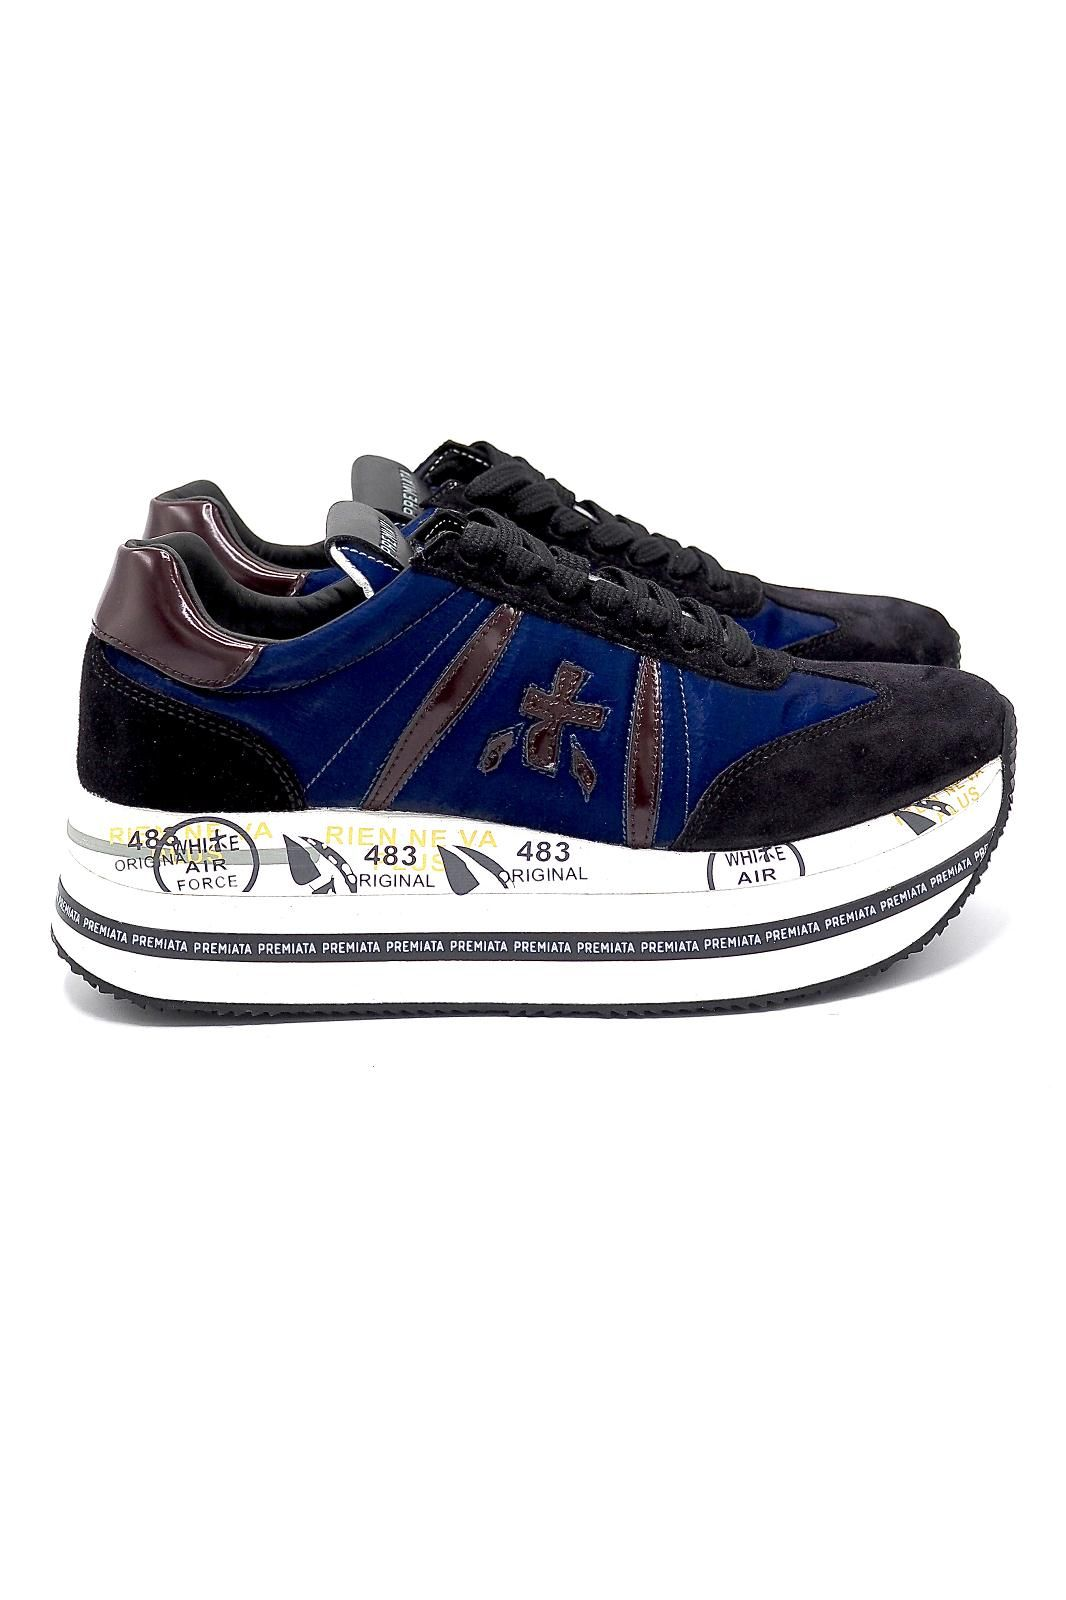 Premiata basket bas Bleu femmes (Prem-Semelle épaisse - BETH 5051 bleu + bronze métali) - Marine | Much more than shoes